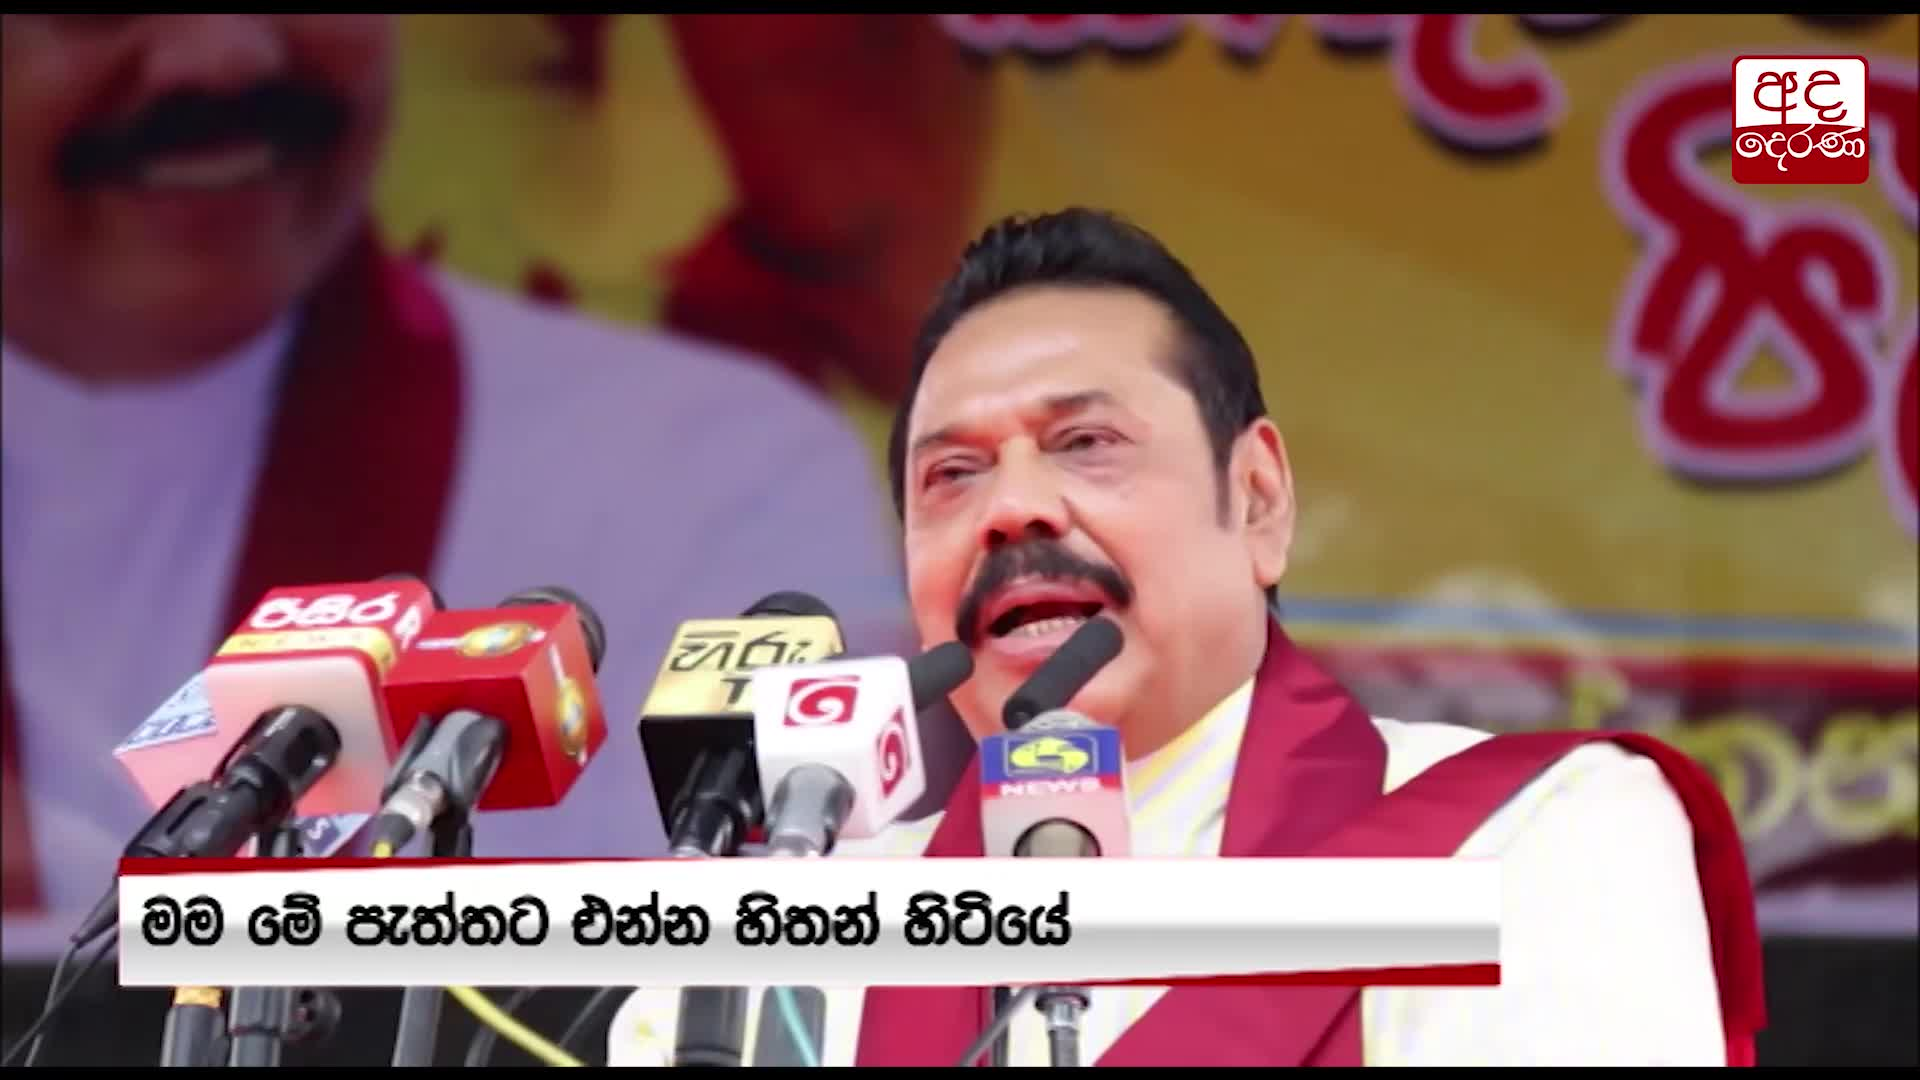 This govt is still opening development projects initiated by us - Mahinda